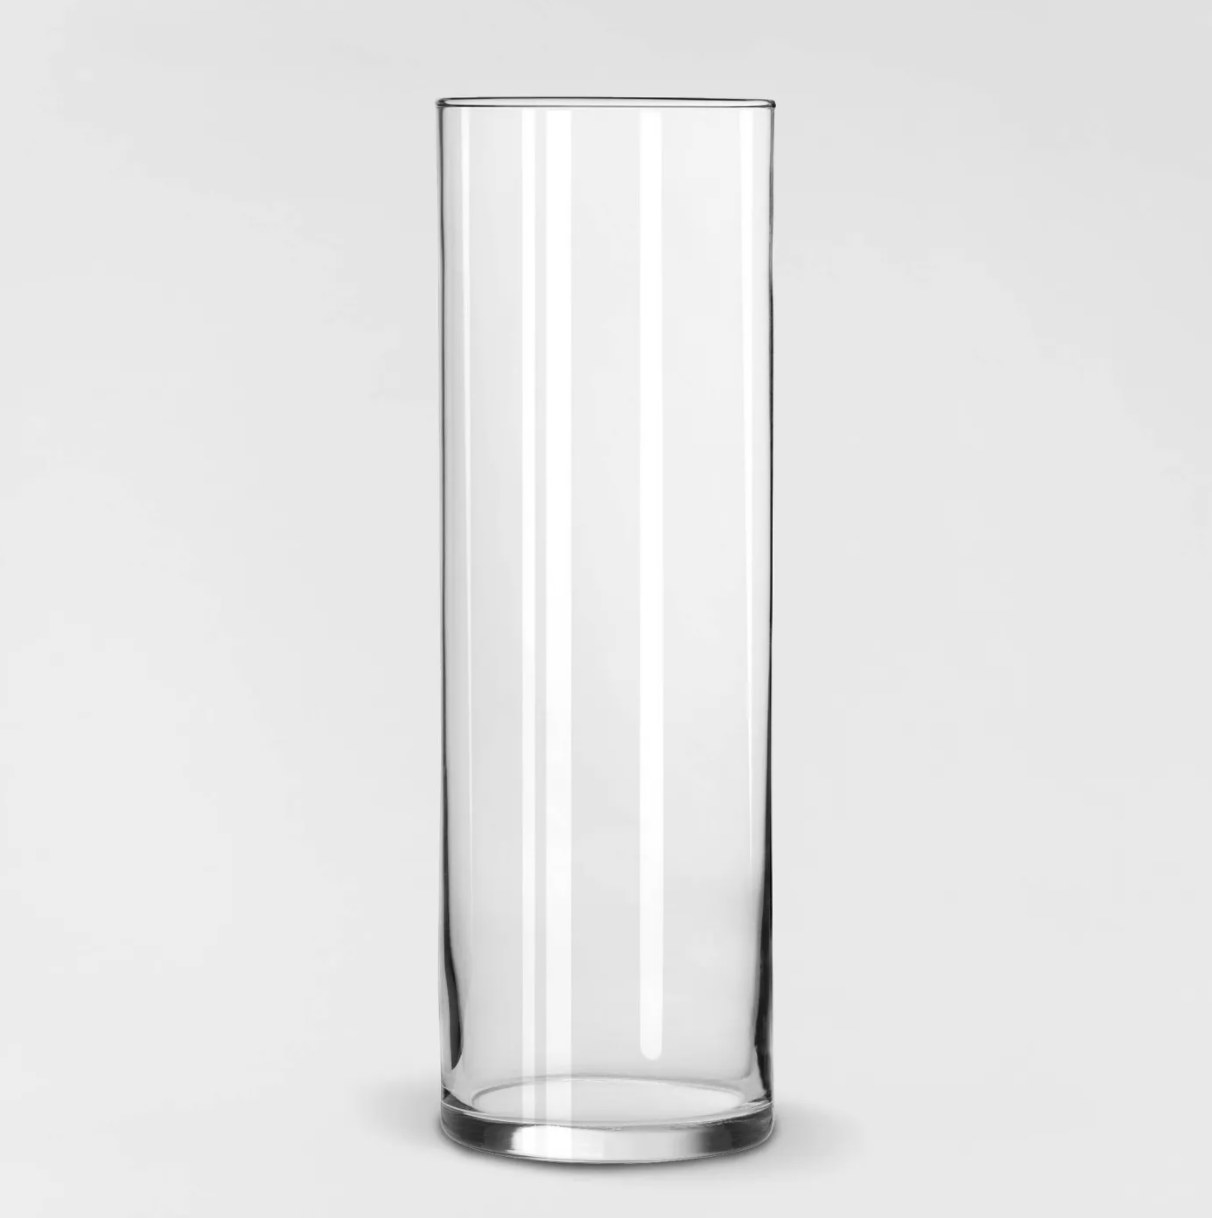 The clear cylinder vase